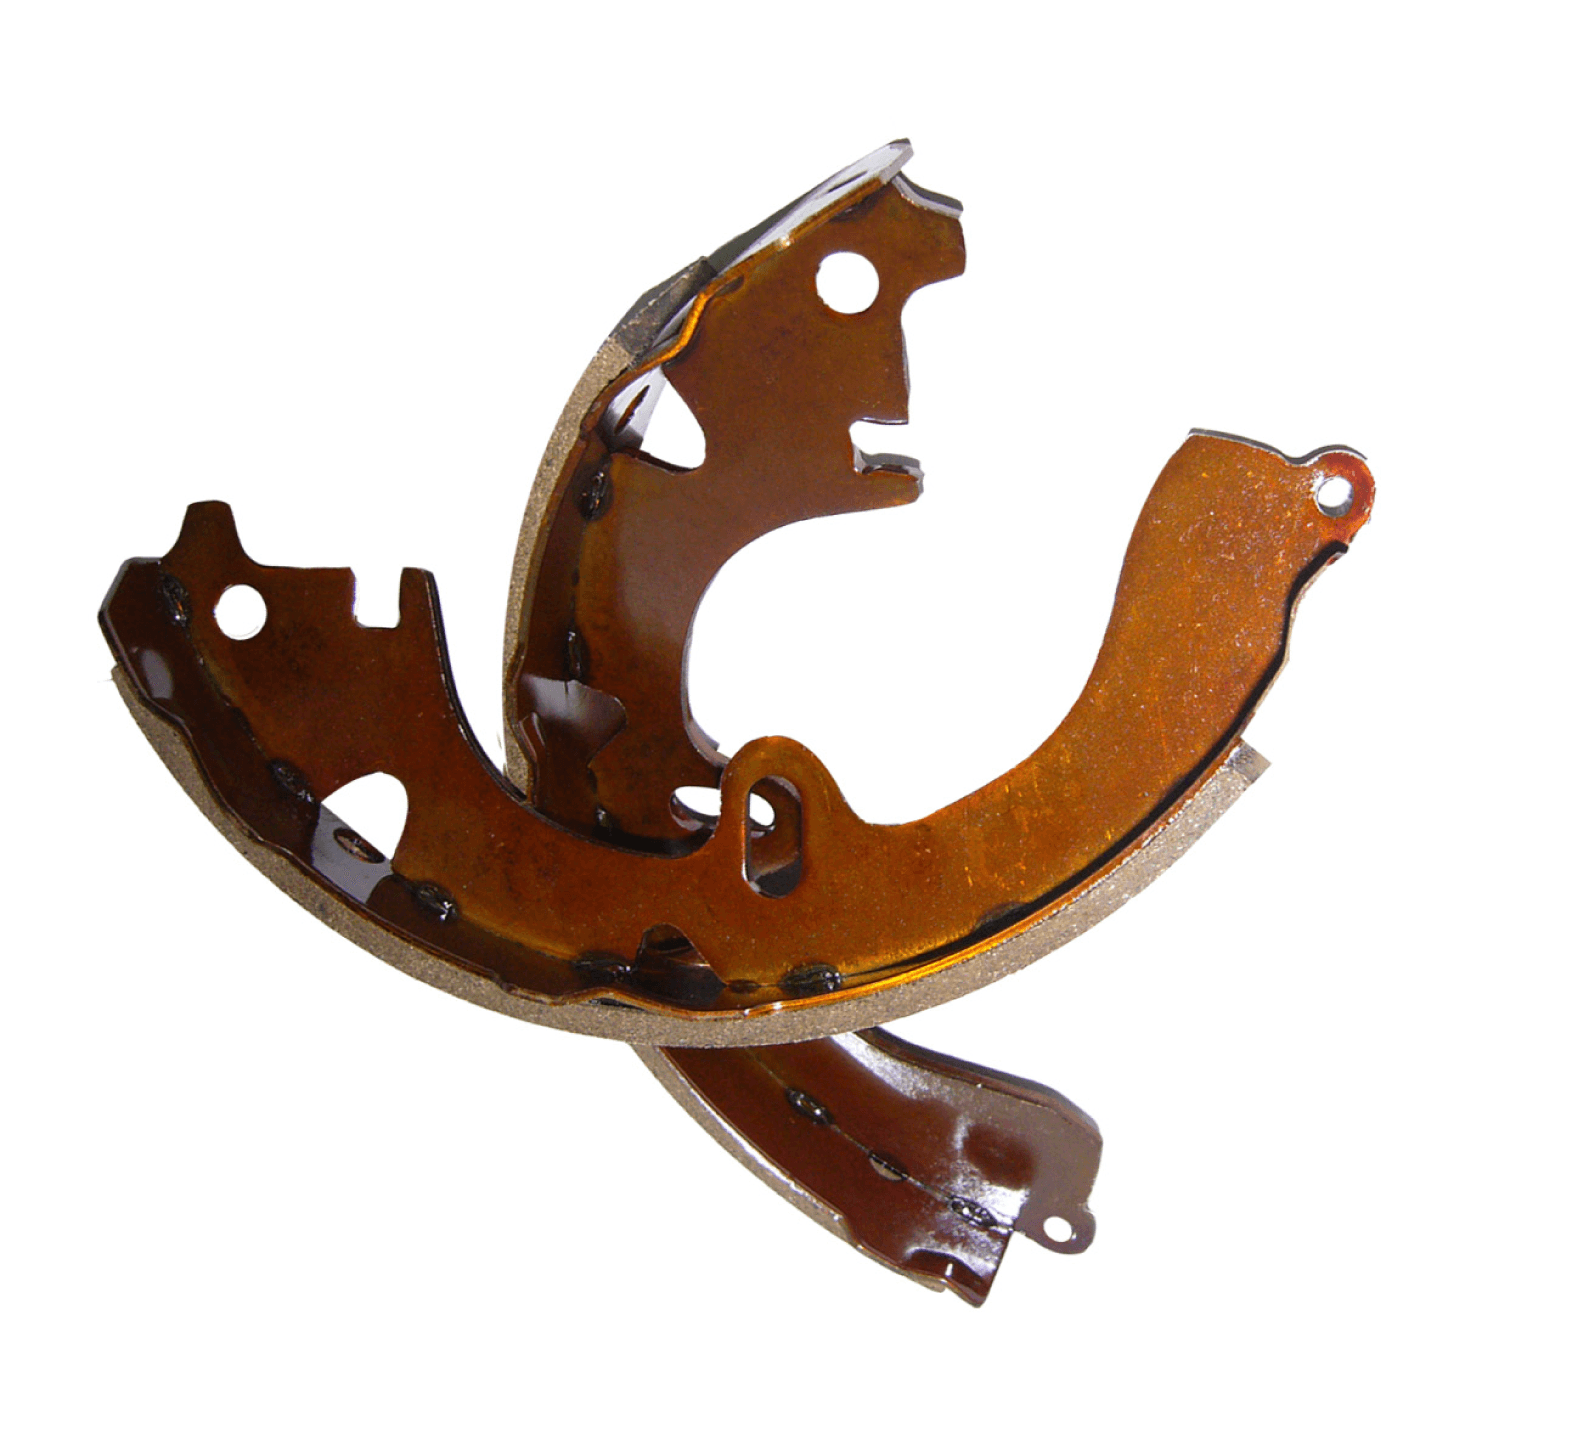 Automobile Drum Brake Shoes for Brake Systems made by Taiwan Brake Technology Corp. 勤晟工業股份有限公司 - MatchSupplier.com